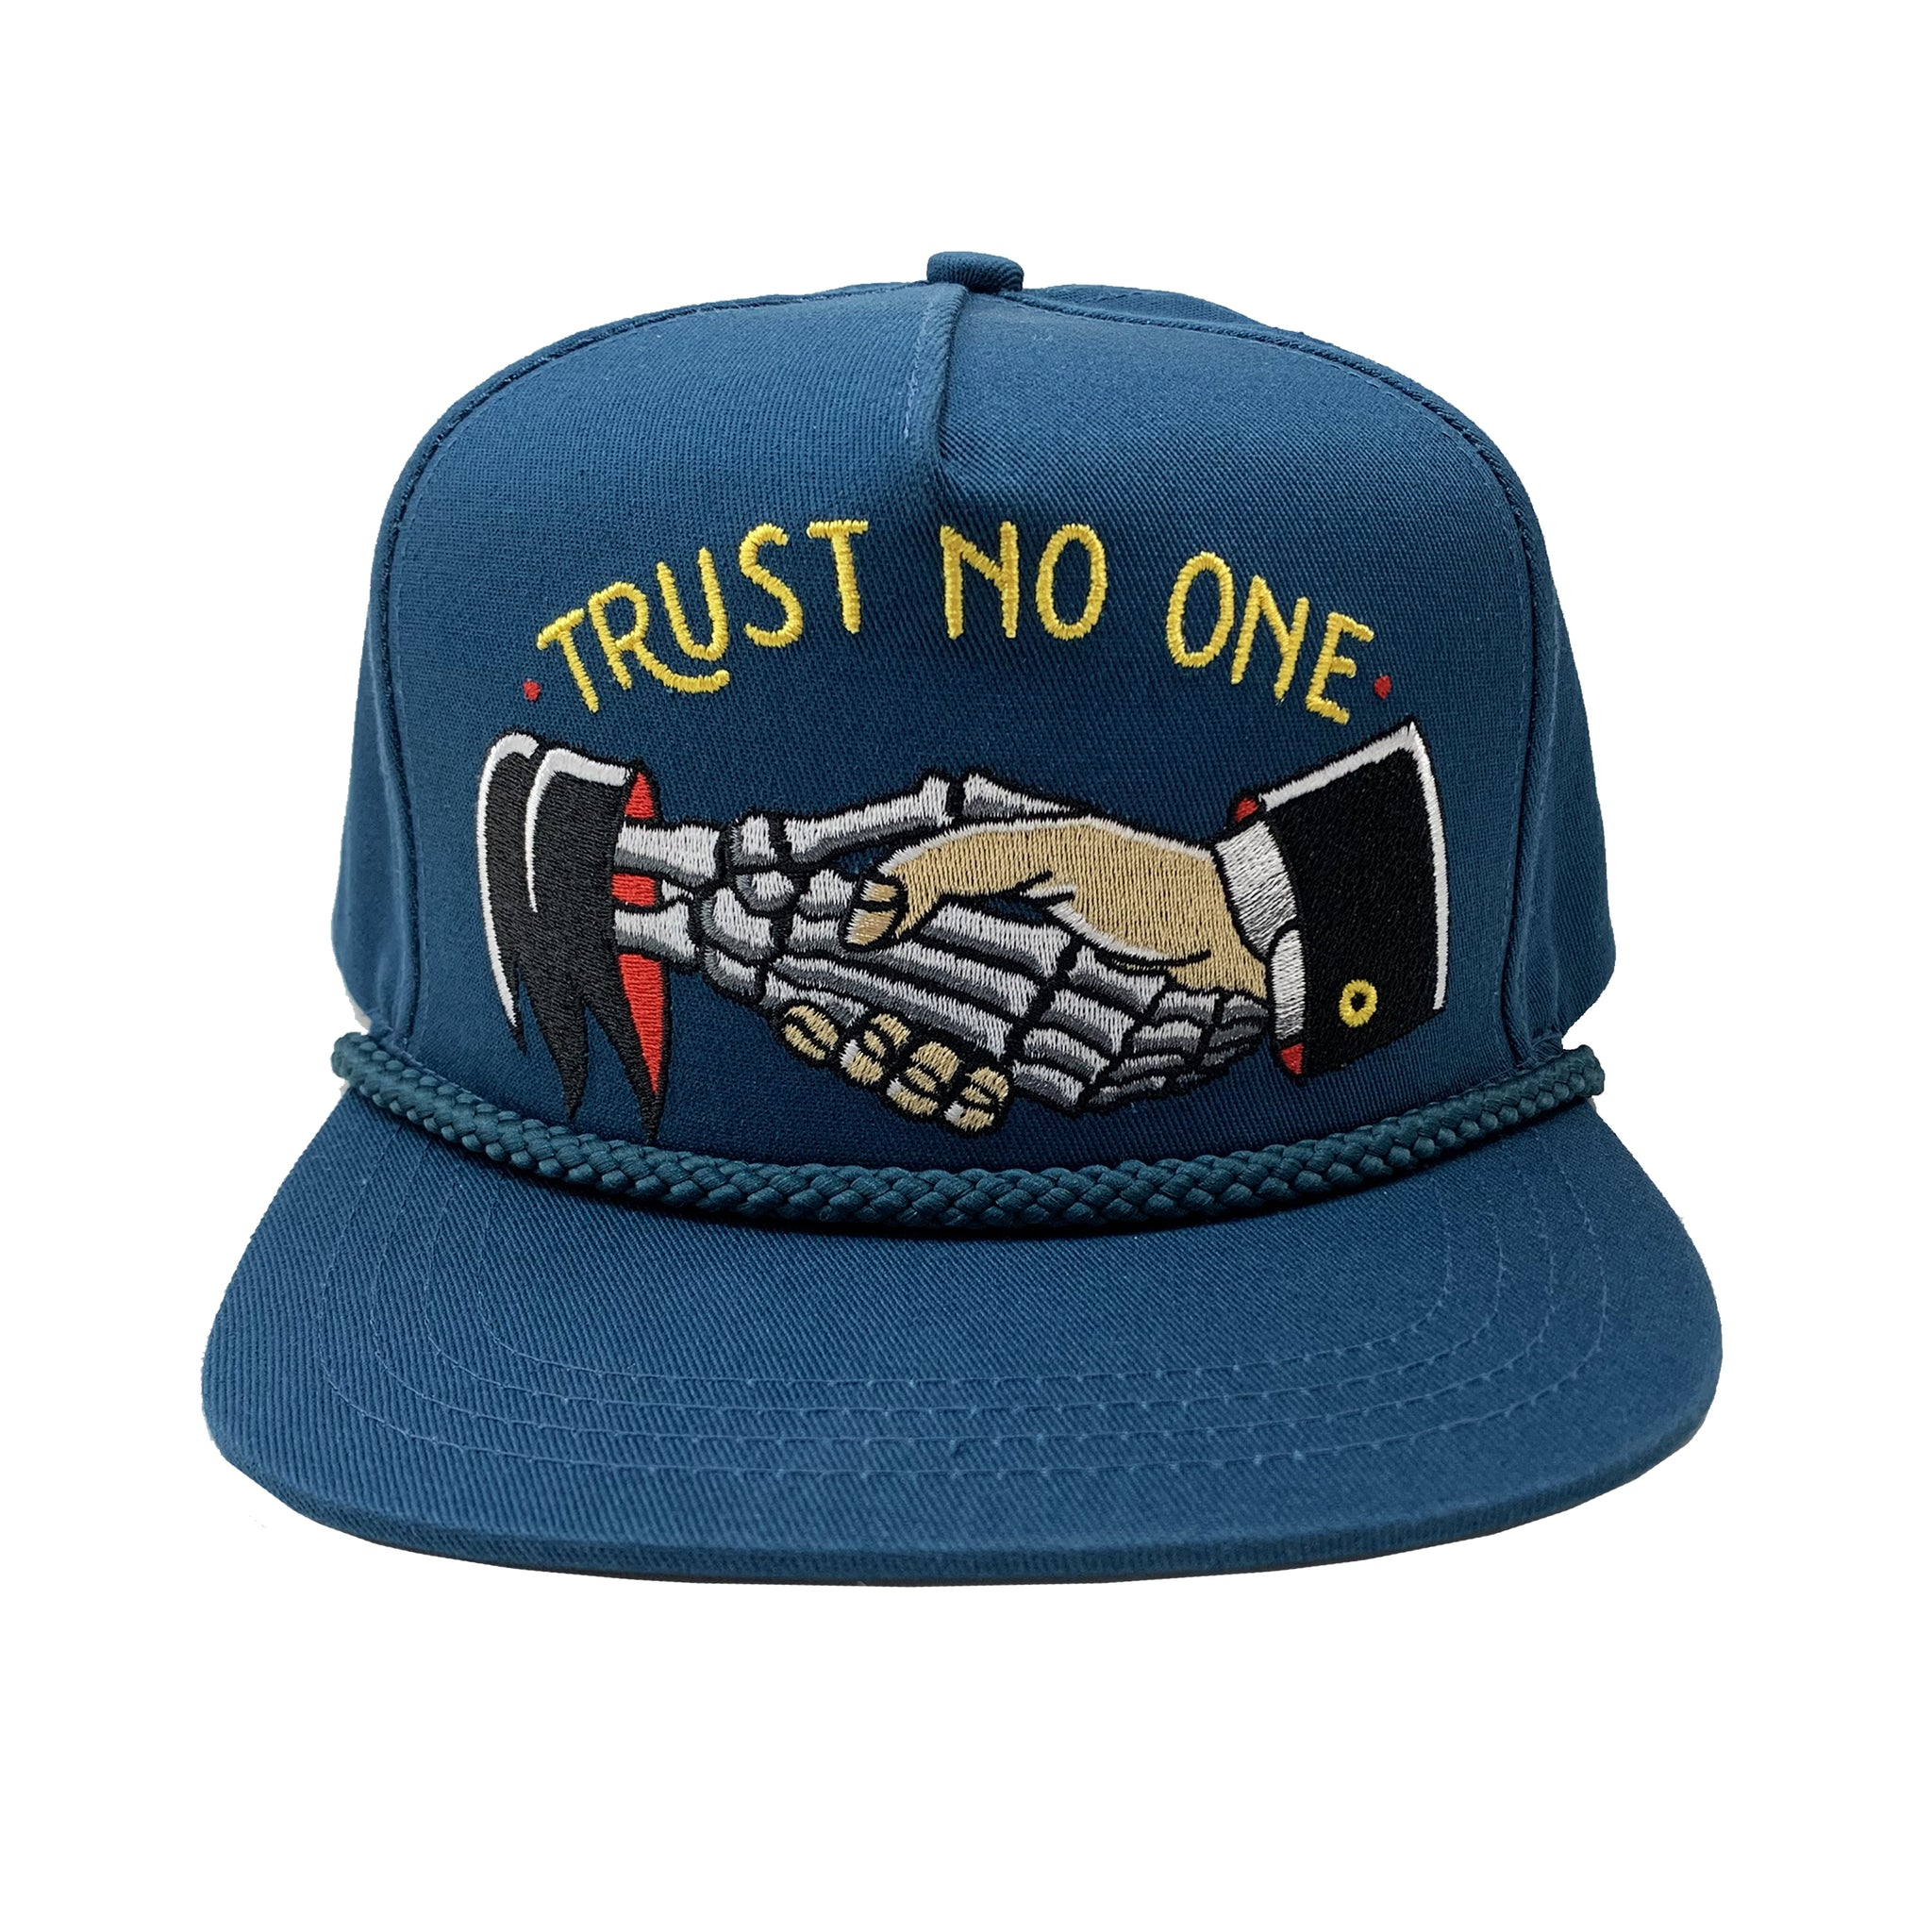 Trust No One Cap